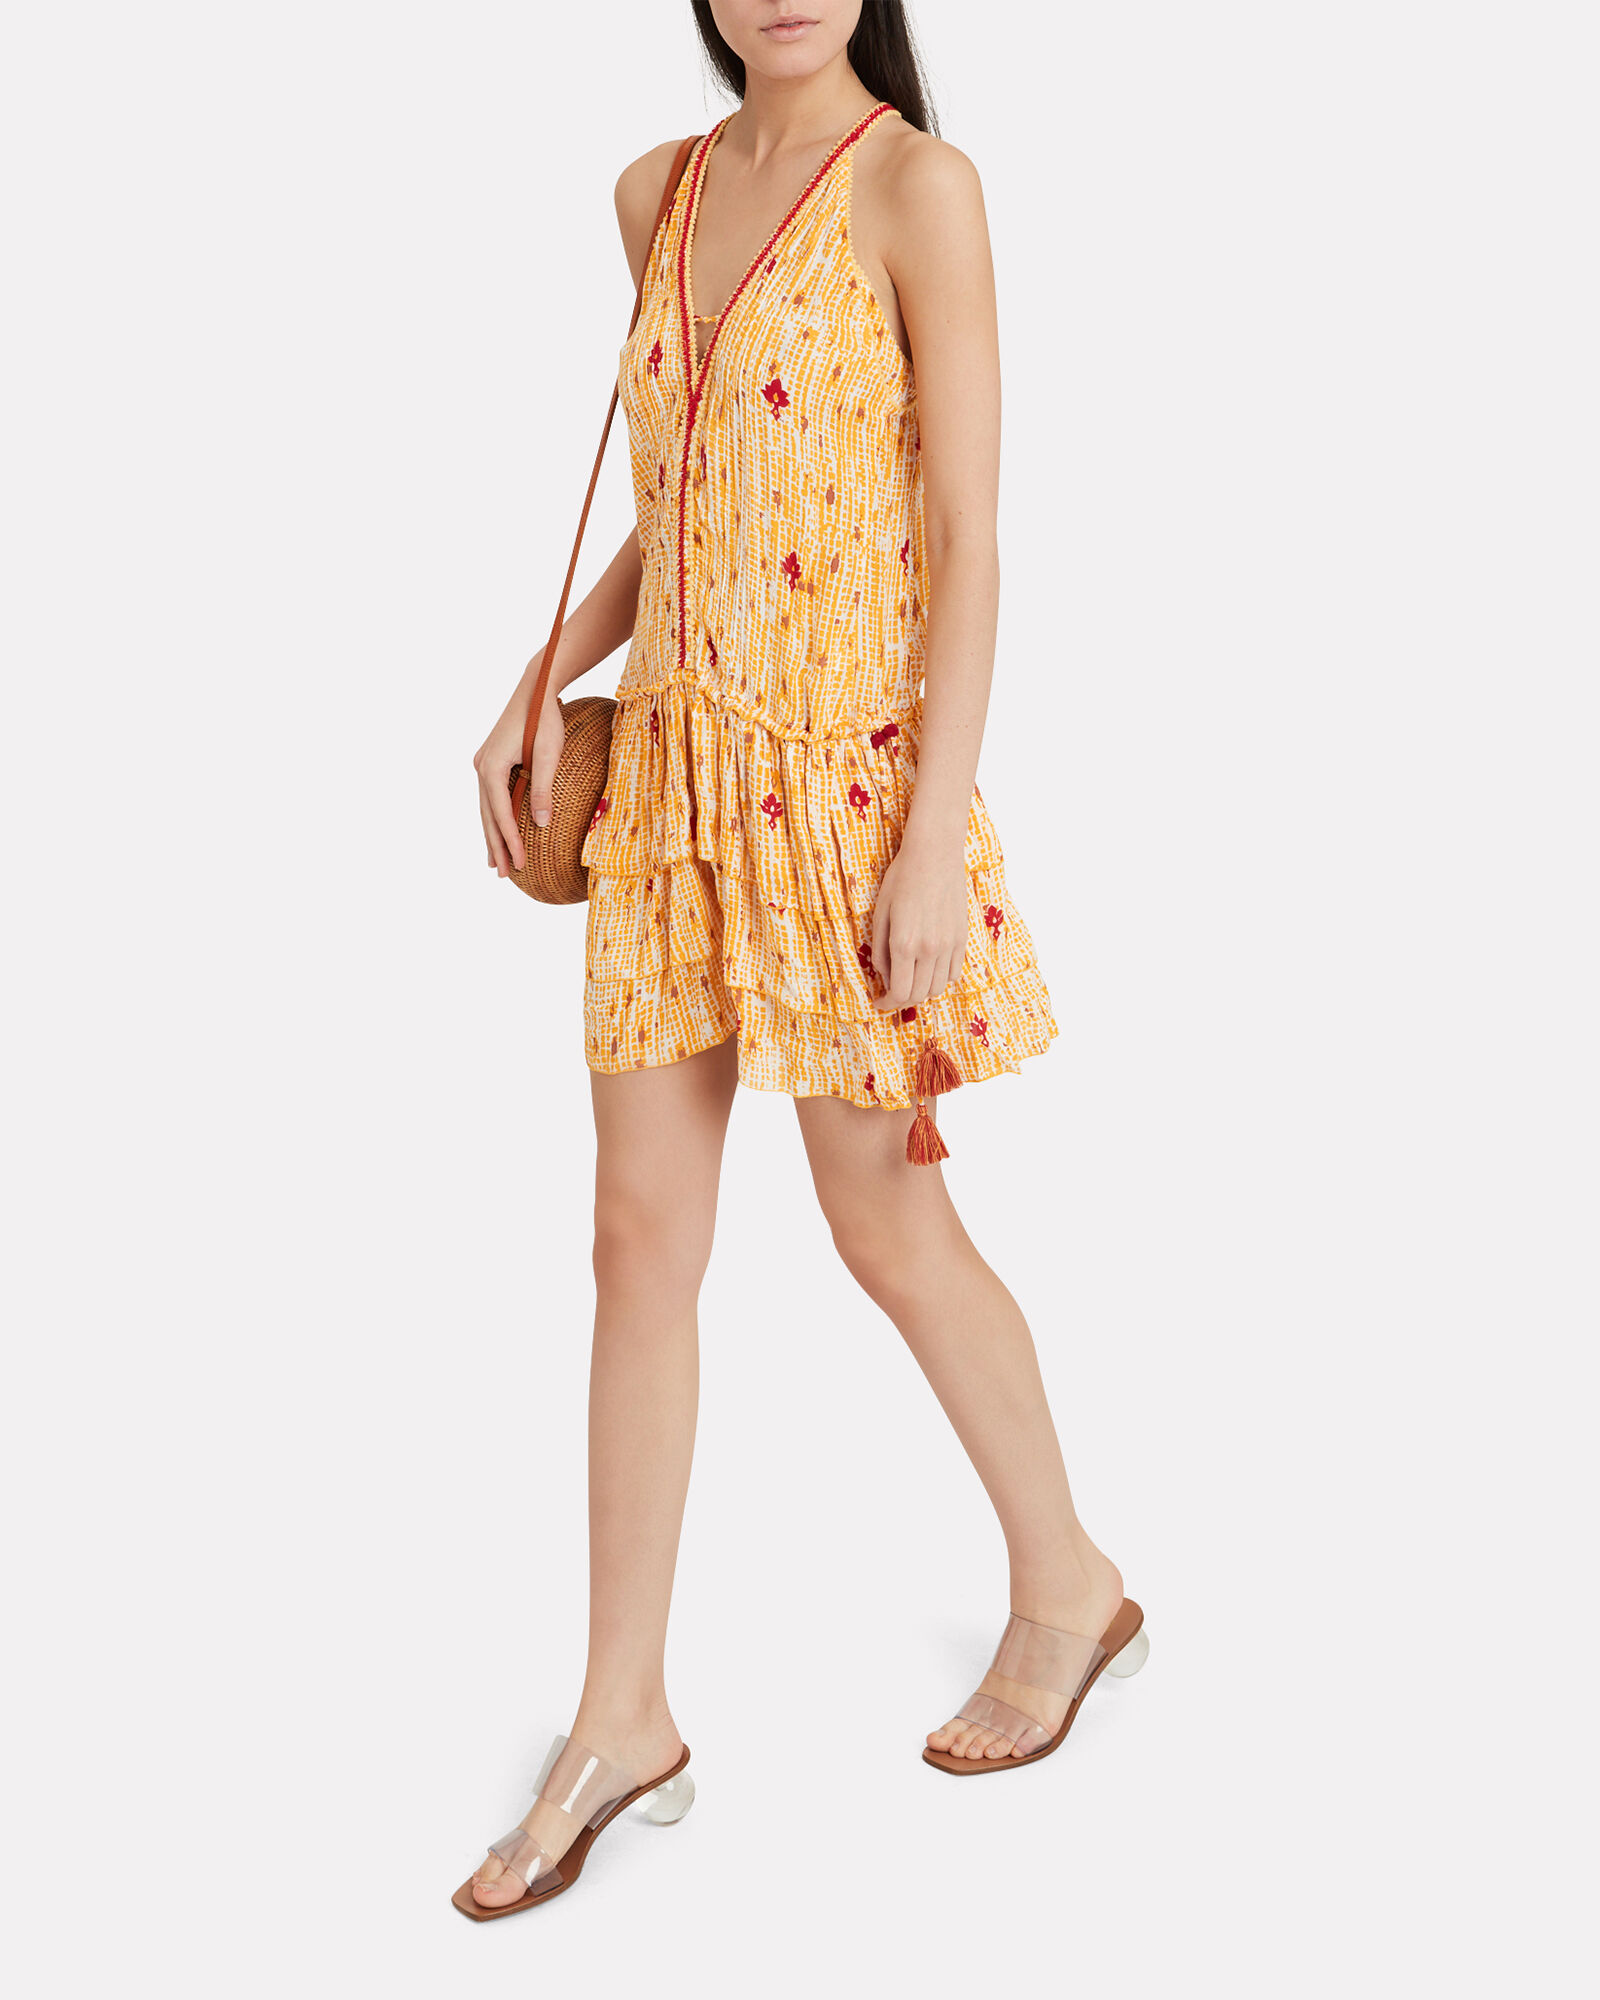 Bety Sleeveless Floral Dress, YELLOW, hi-res